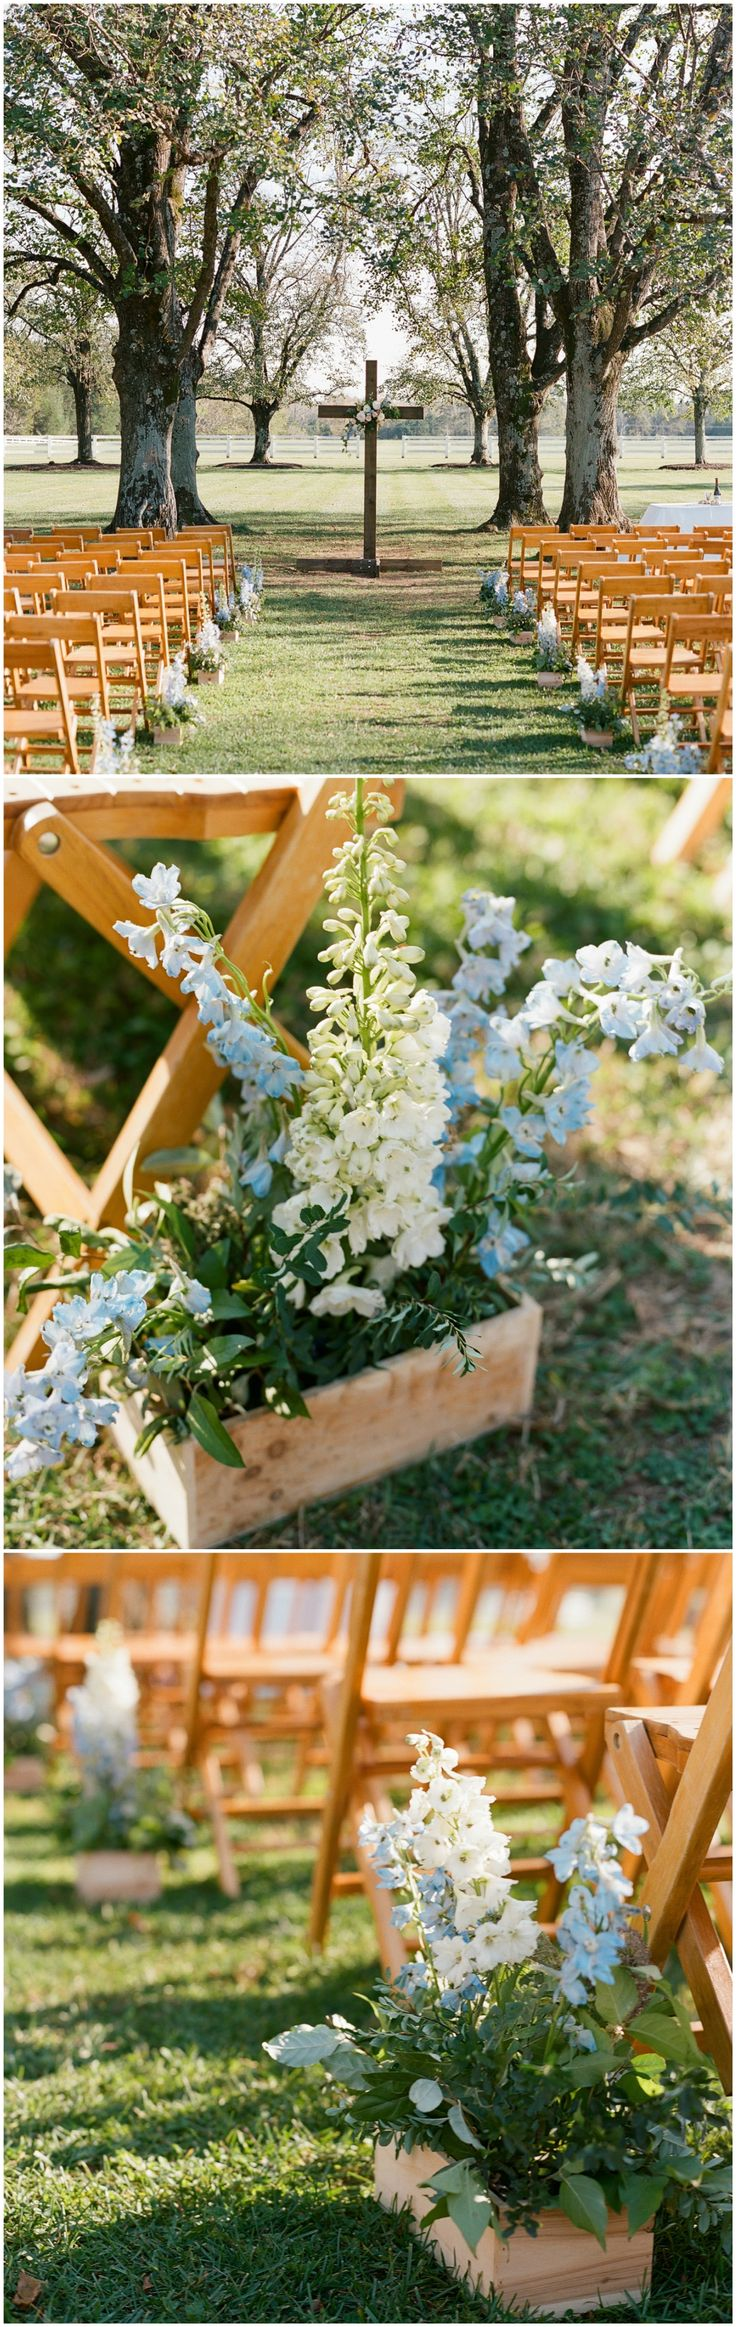 Religious wedding ceremony, wooden cross, folding wood chairs, blue flowers // Elisa Bricker